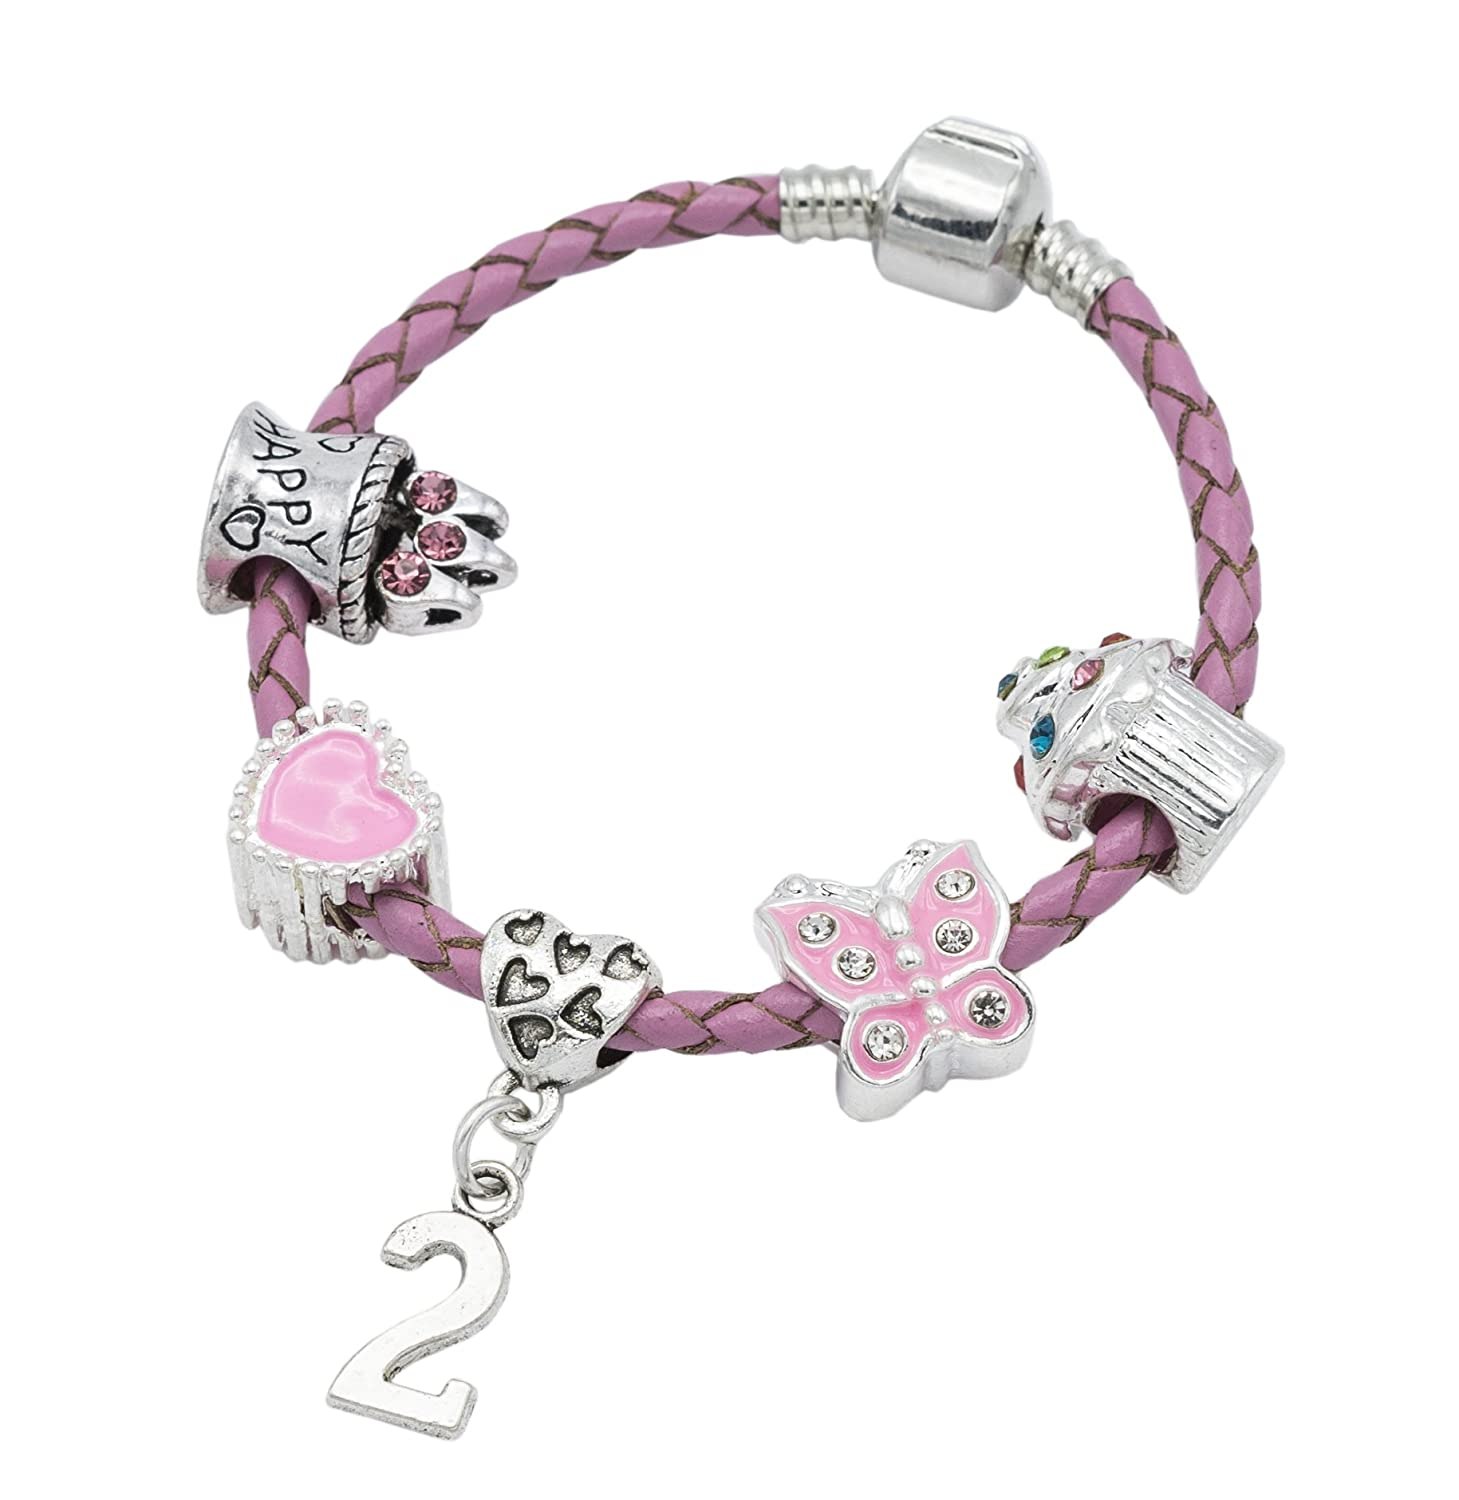 Children's Pink Leather Happy 2nd Birthday Charm Bracelet With Lovely Jewellery Hut Gift Pouch - Girl's & Children's Birthday Gift Jewellery BRKID2